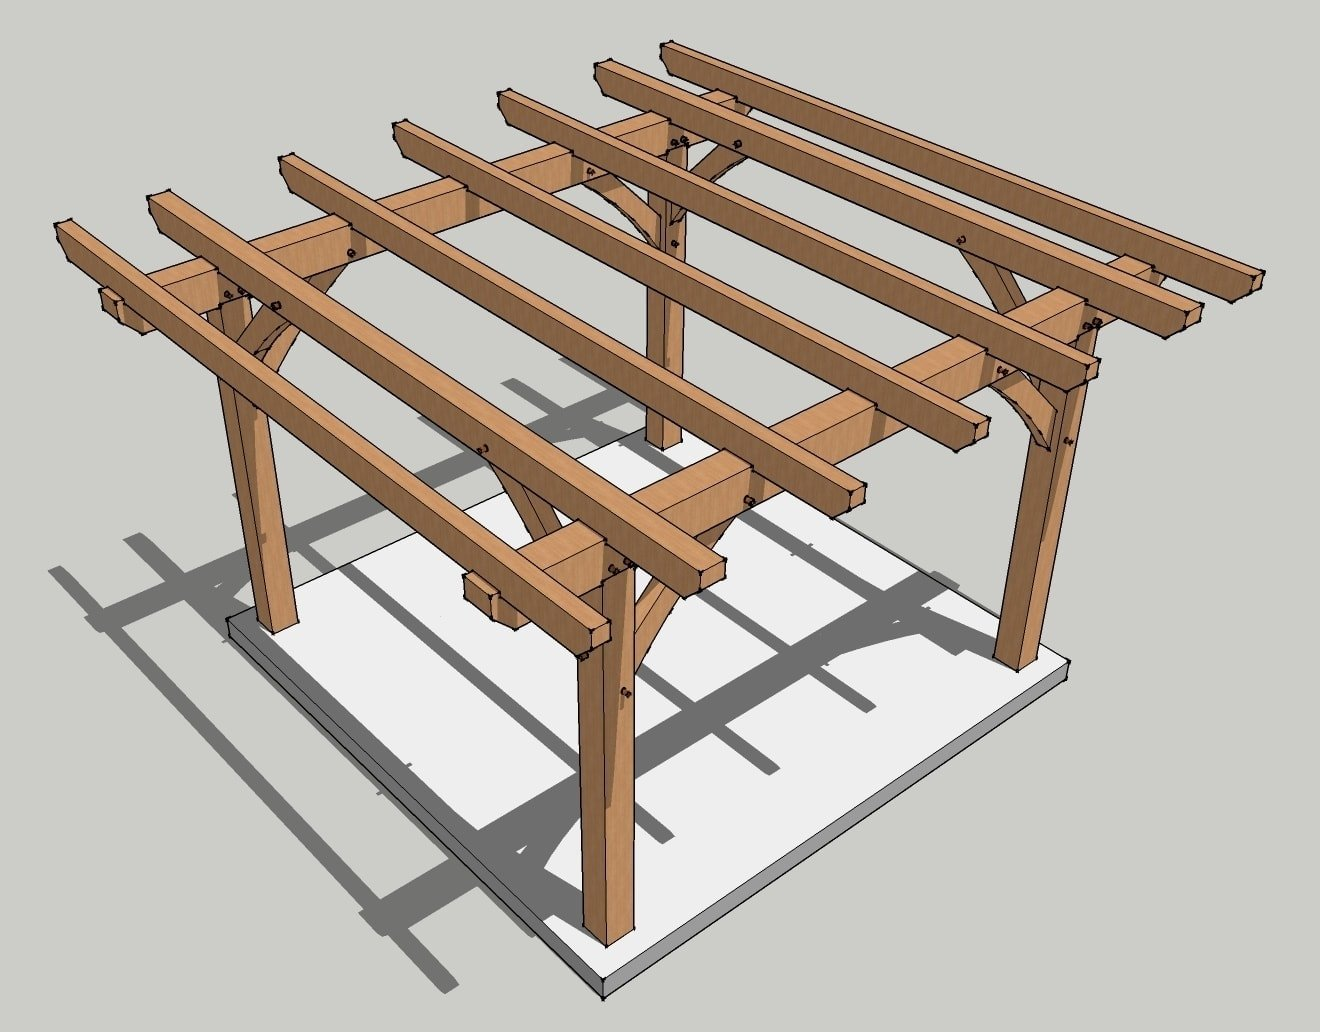 12x12 Timber Frame Pergola Plan on shed construction project framing rafters